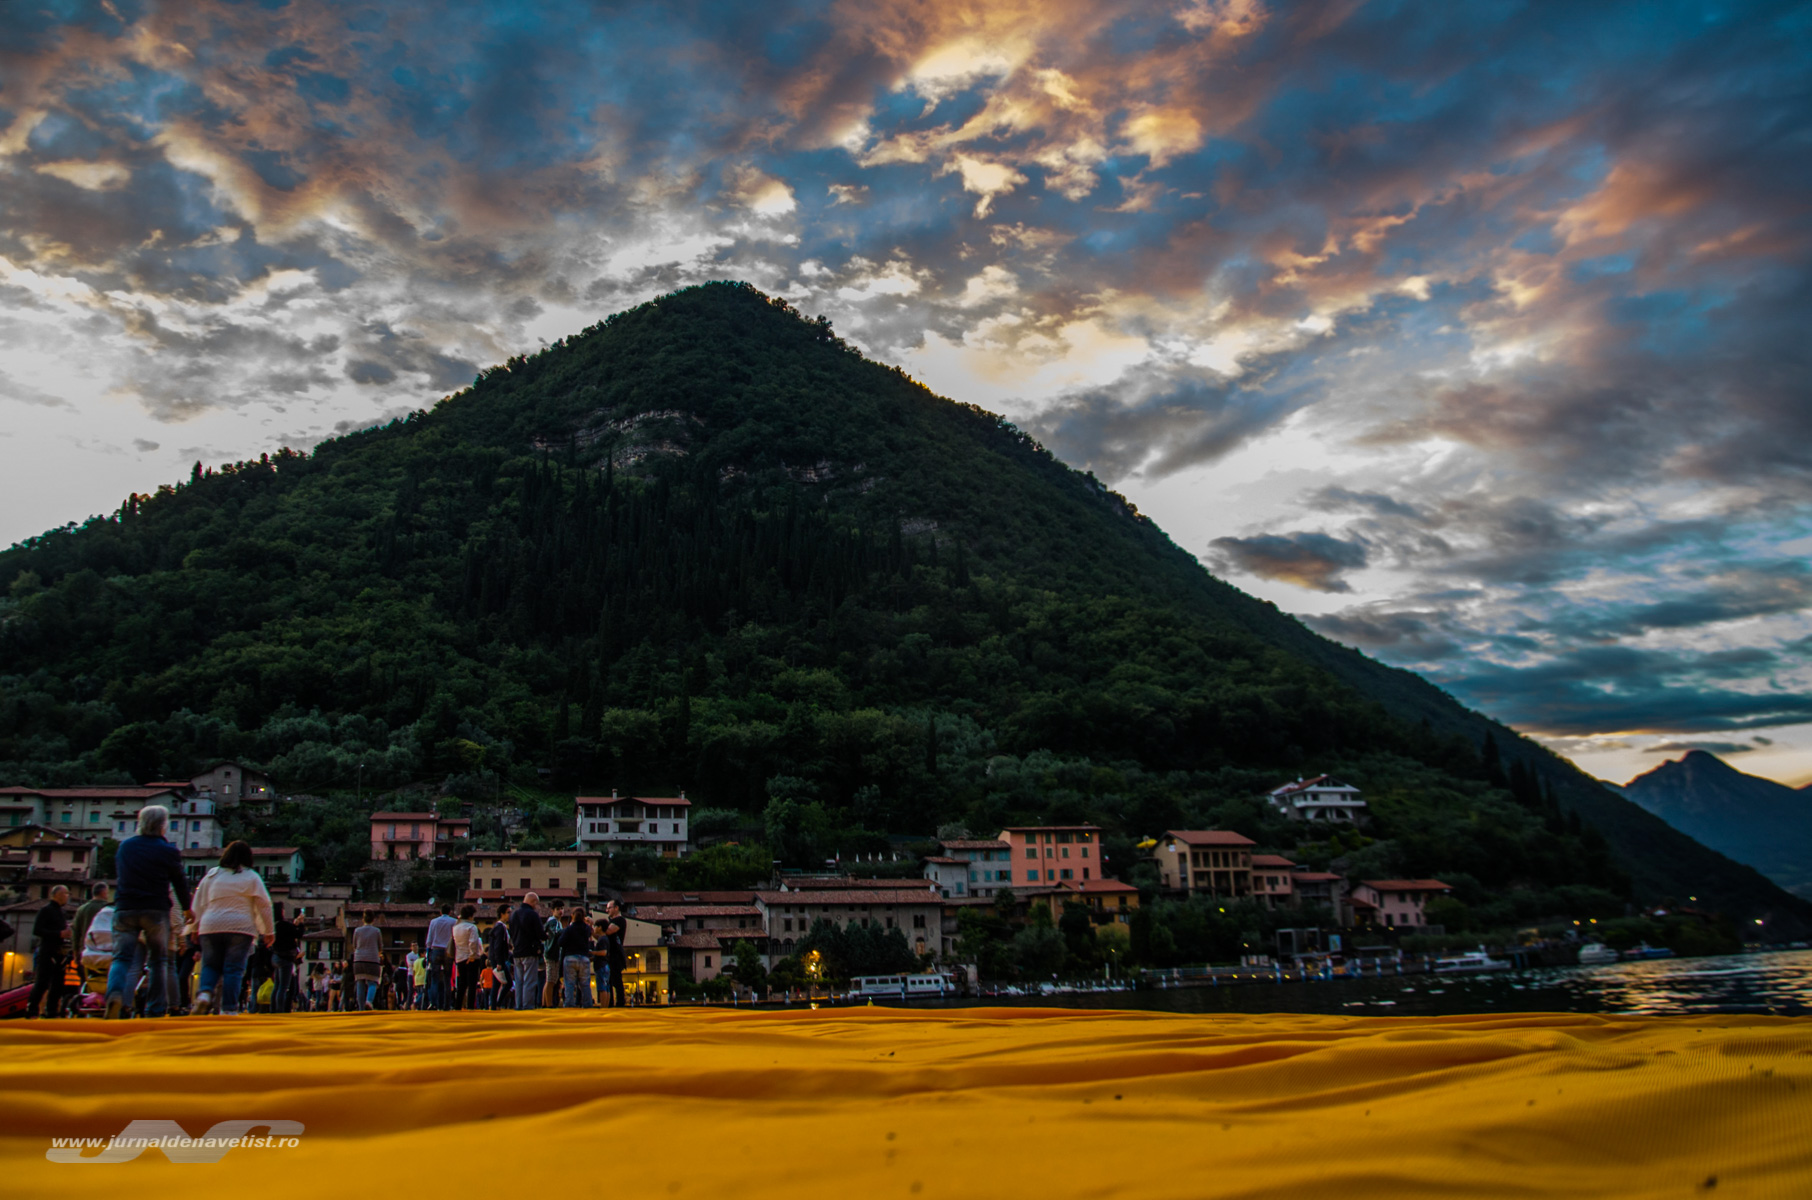 The Floating Piers 8003